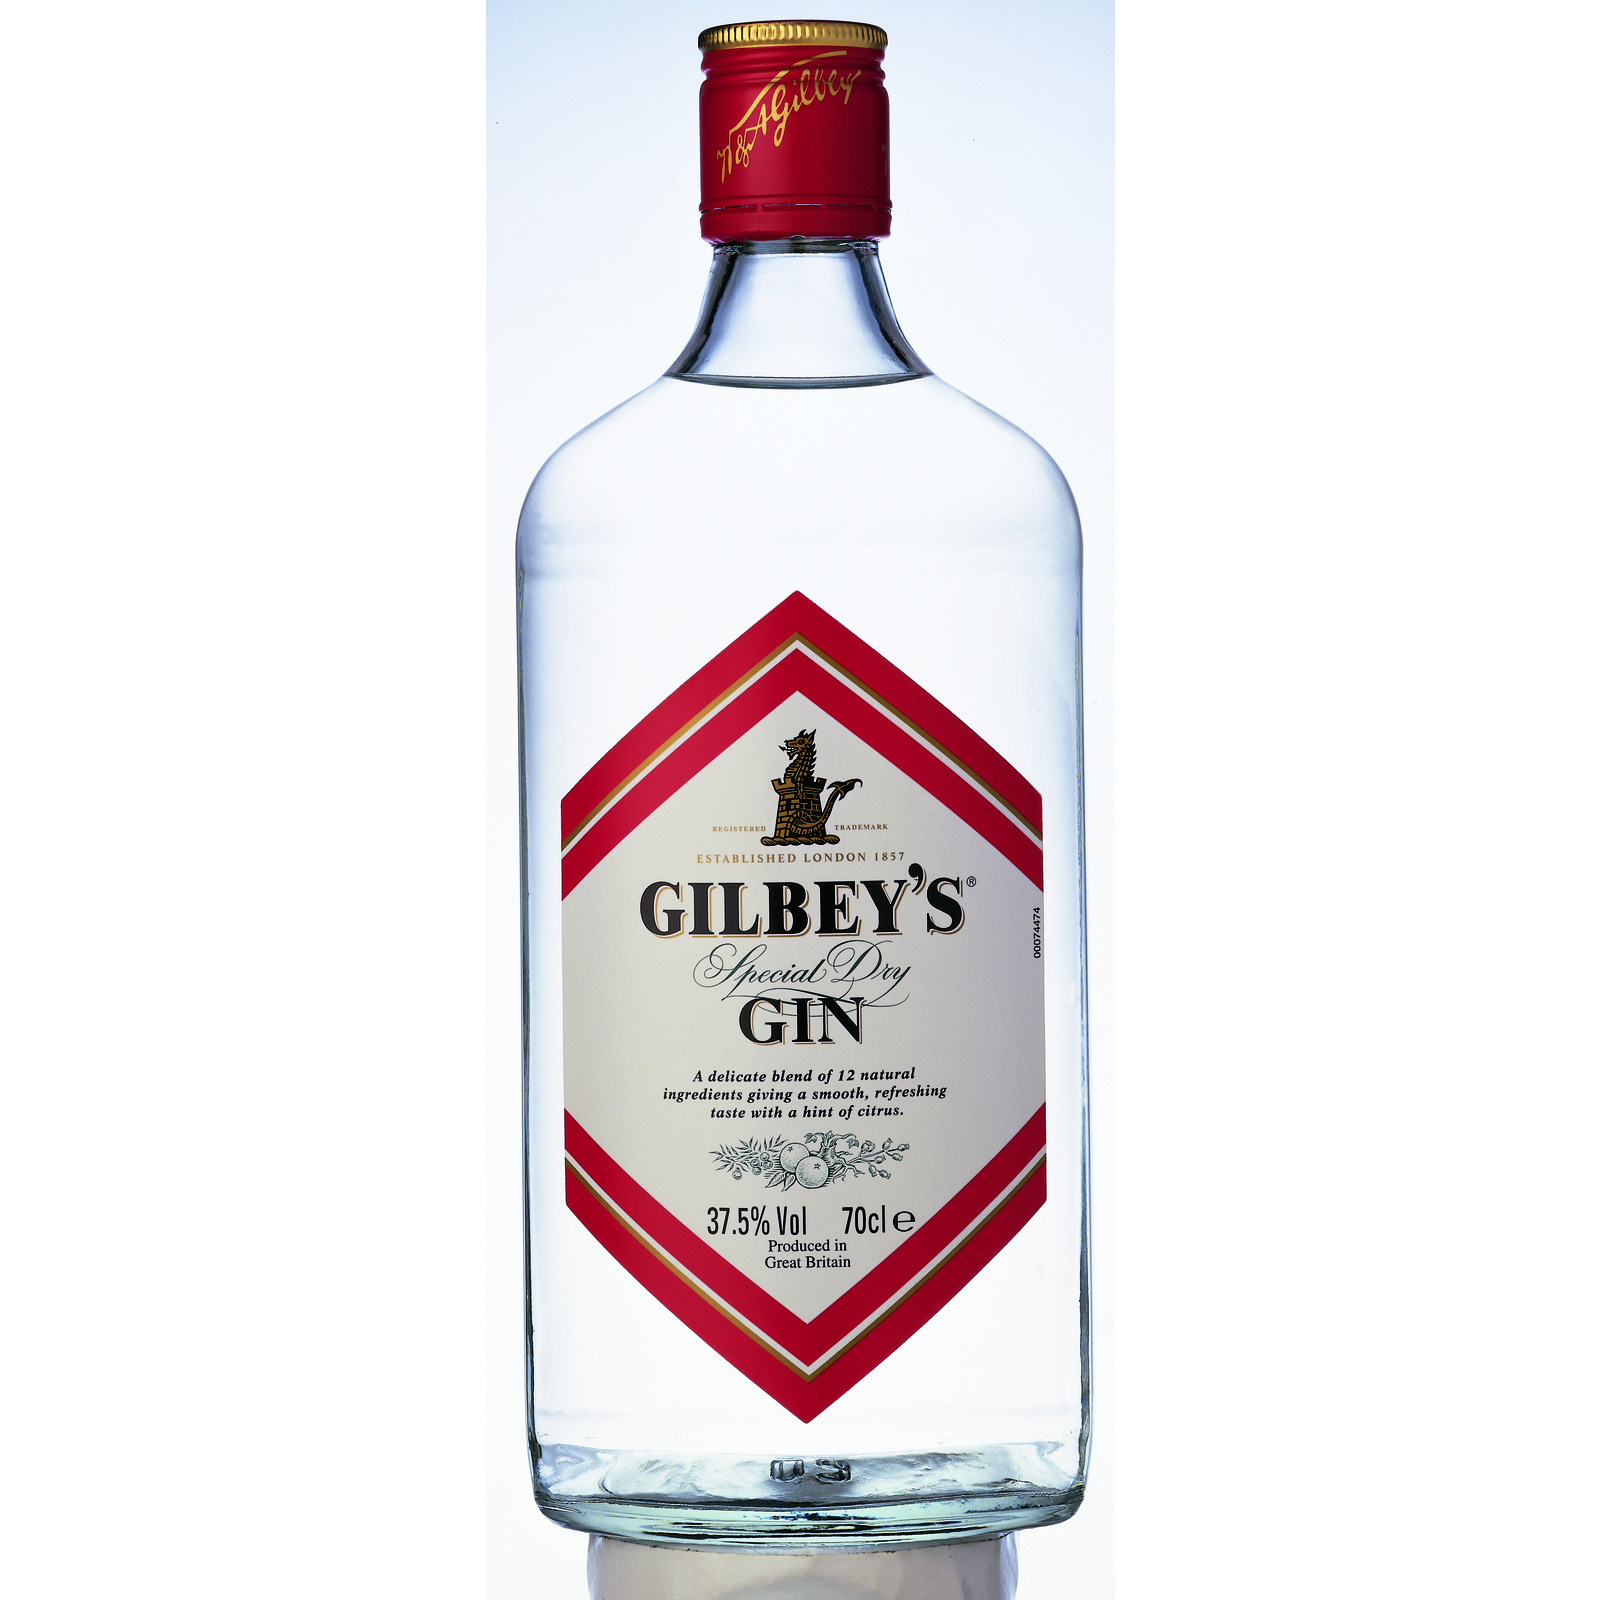 Gilbeys London Dry Gin